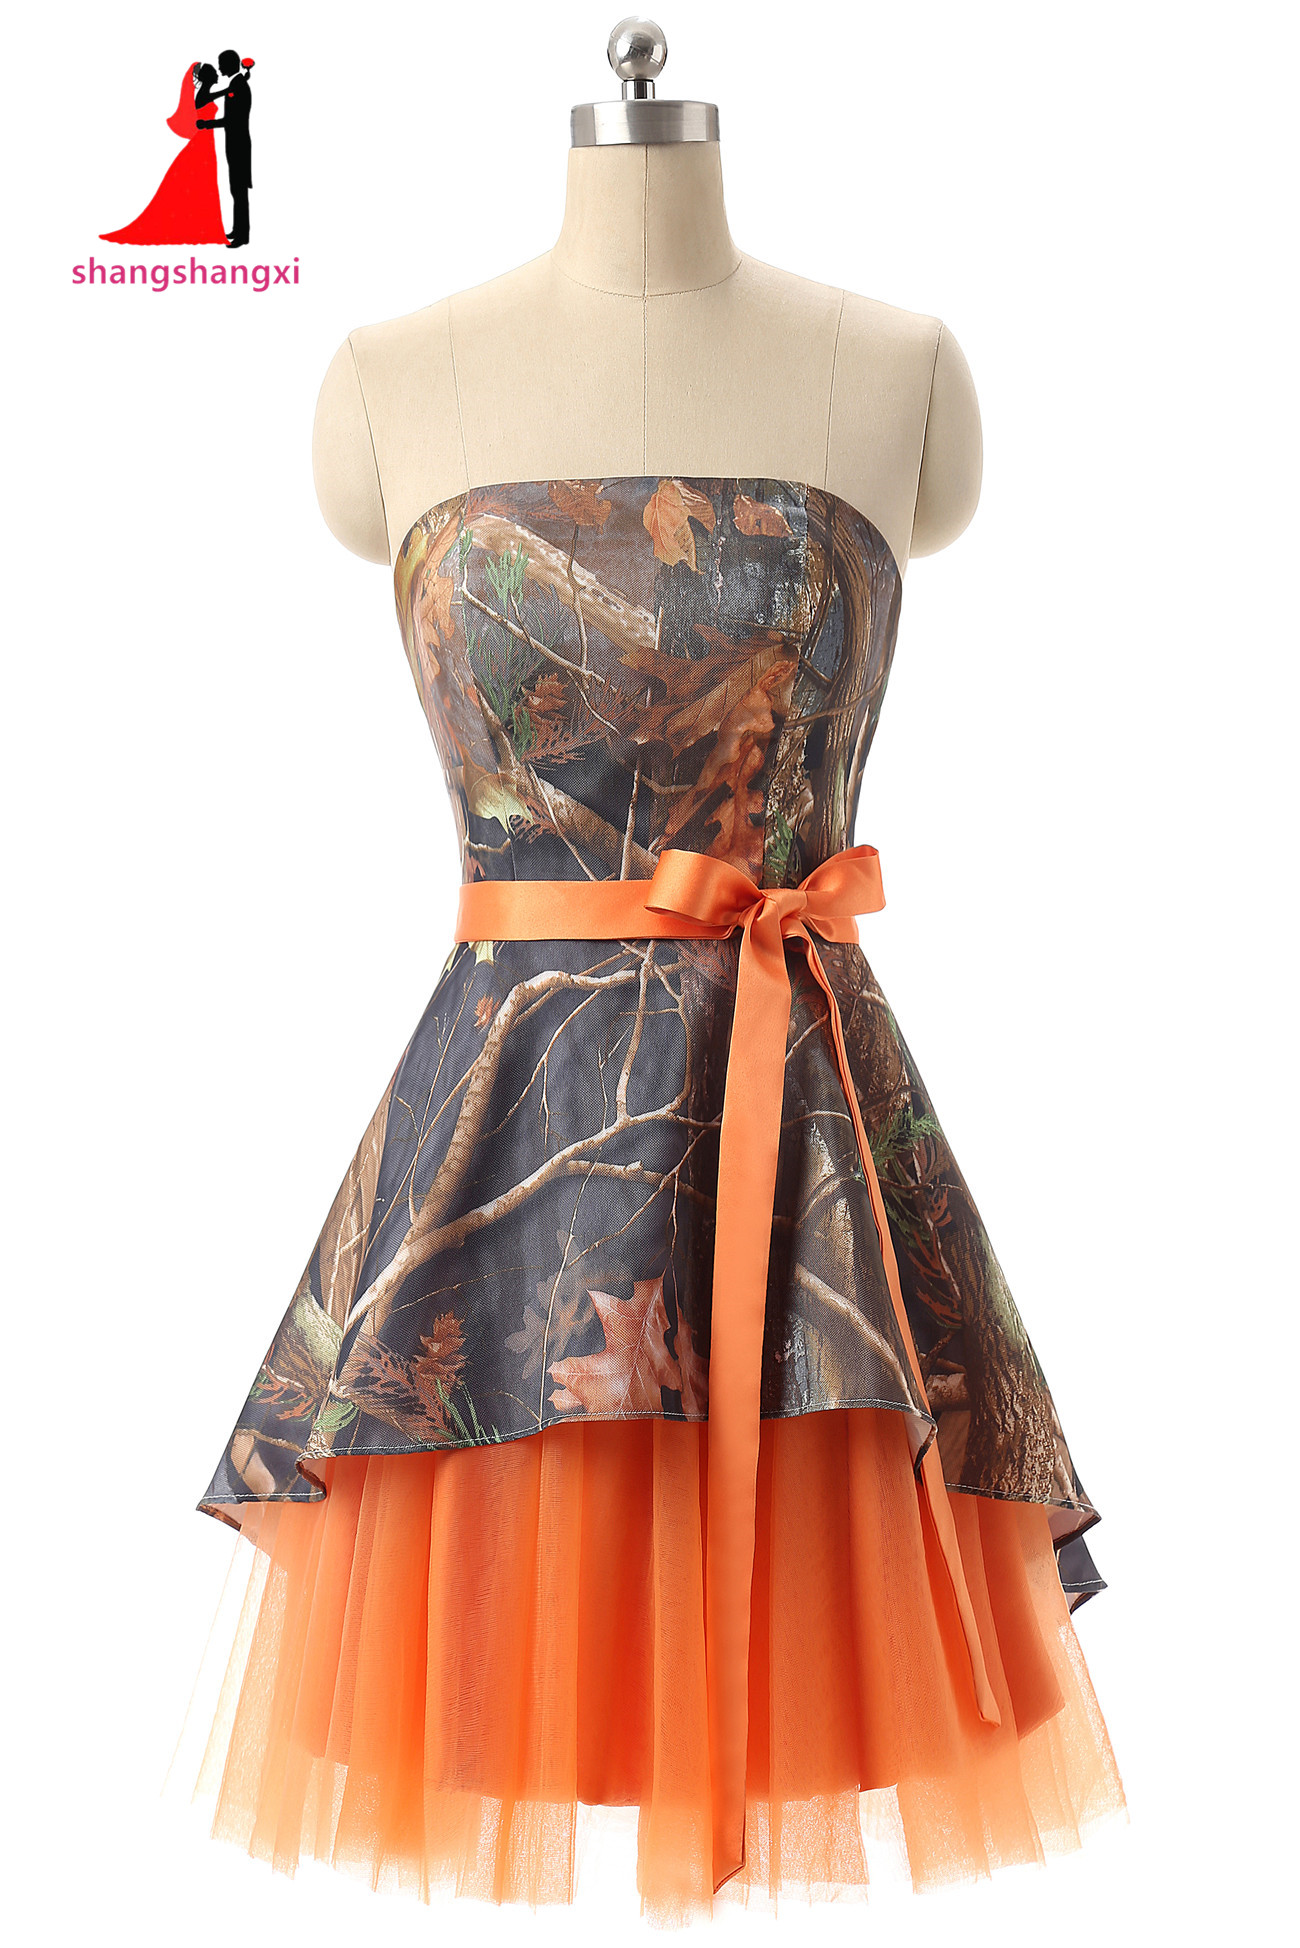 Orange camouflage bridesmaid dresses plus size wedding party gown orange camouflage bridesmaid dresses plus size wedding party gown maid of honor camo prom dress in bridesmaid dresses from weddings events on ombrellifo Gallery